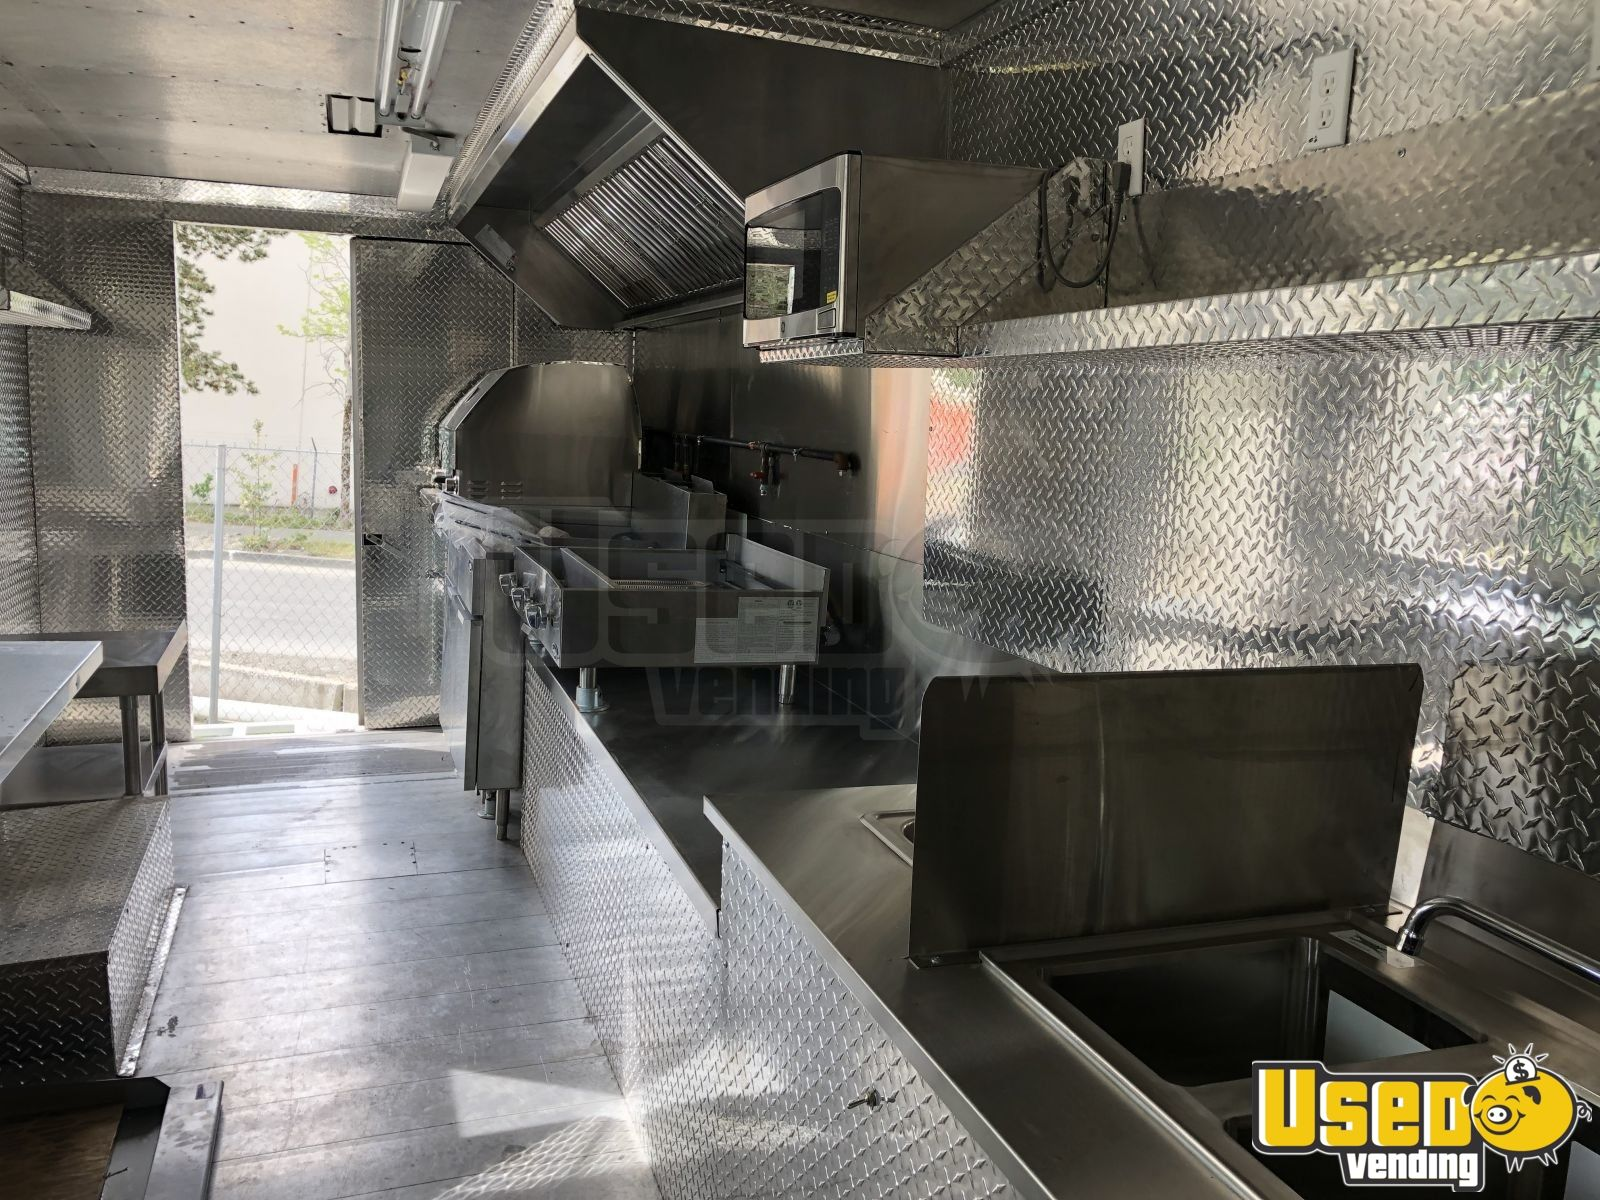 2001 Workhorse P42 All-purpose Food Truck Concession Window Washington Diesel Engine for Sale - 2